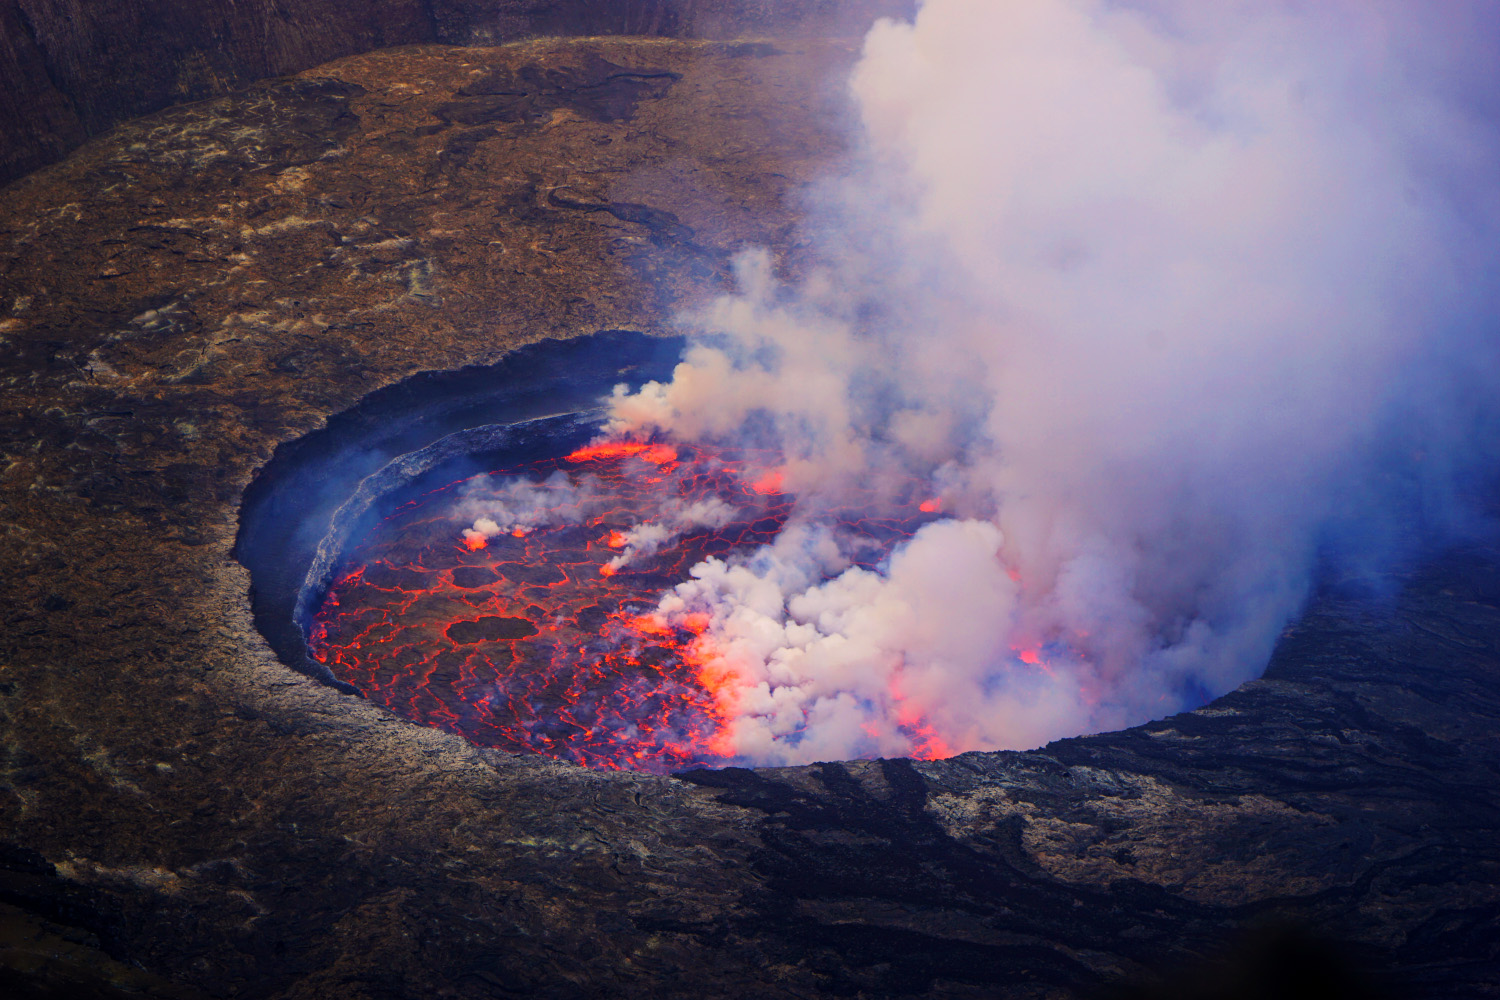 5 Days gorilla tracking Congo with Nyiragongo Volcano hike safari | Democratic Republic of Congo